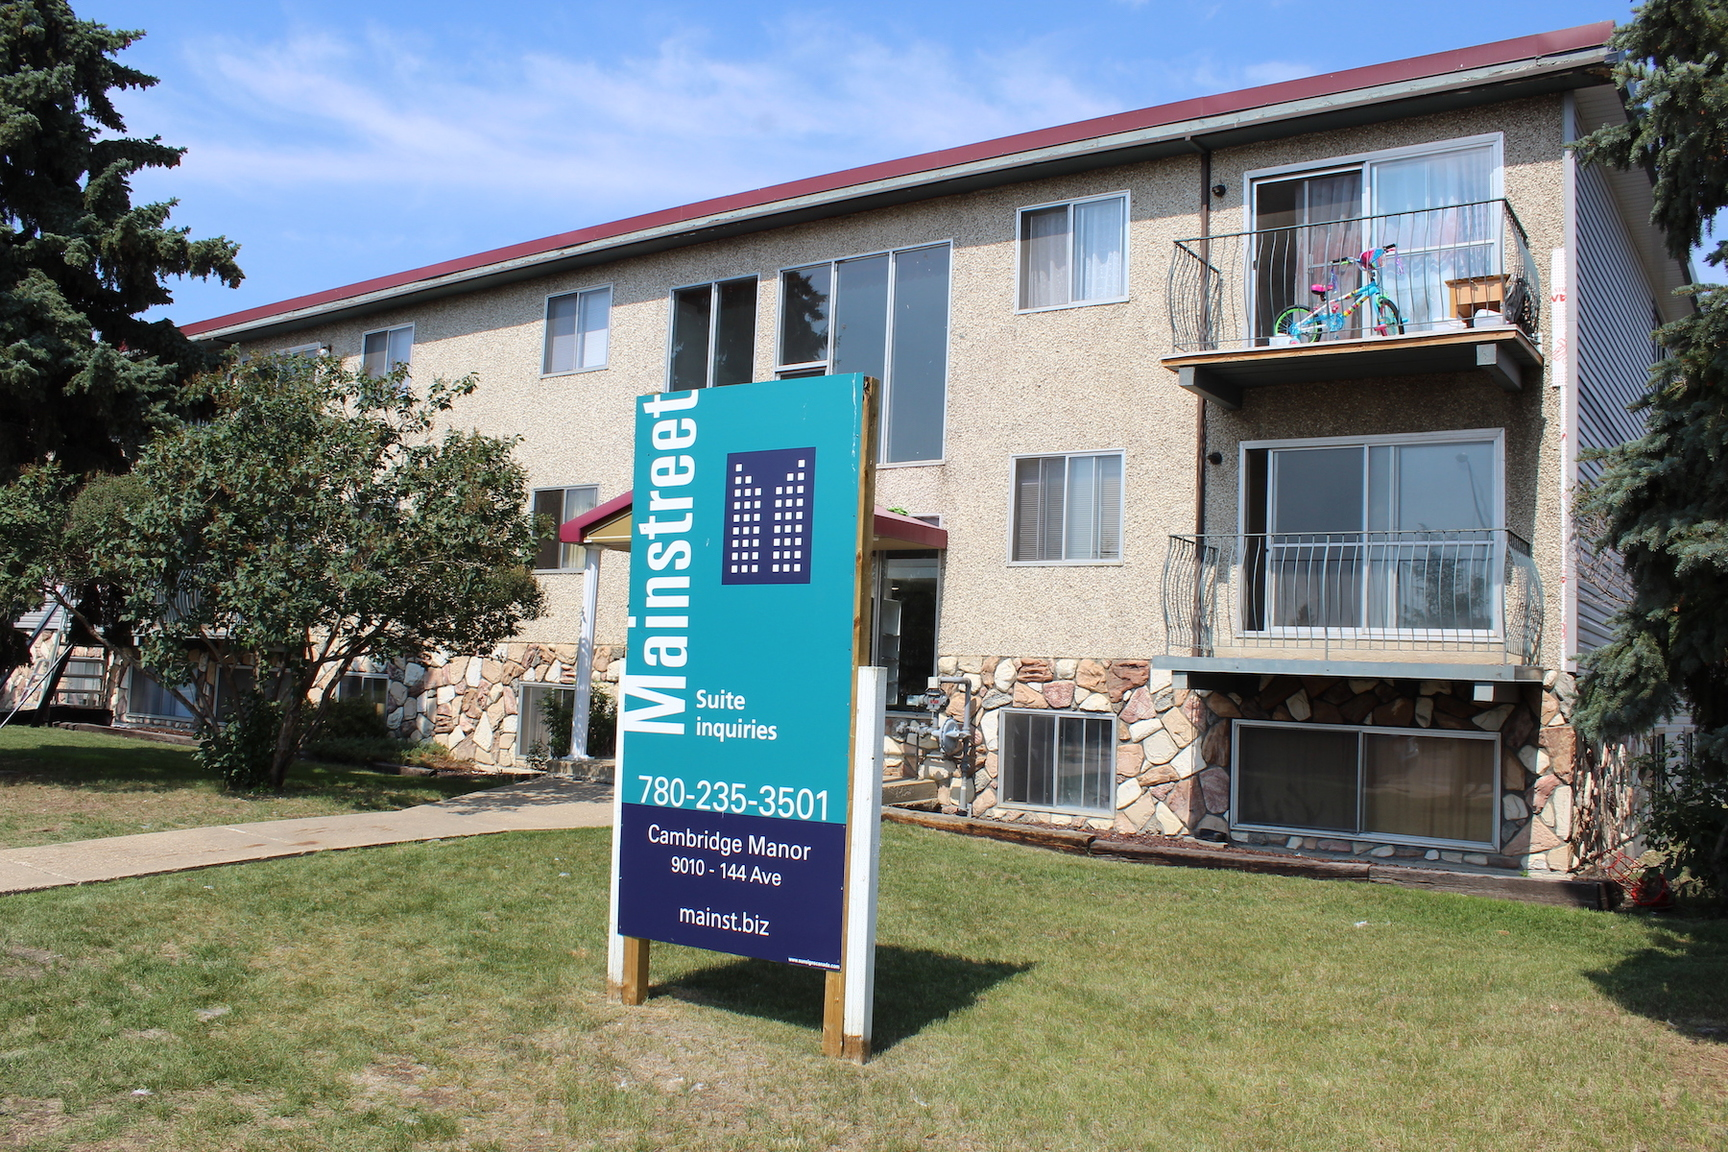 9010 144 Ave NW, Edmonton, AB - $825 CAD/ month